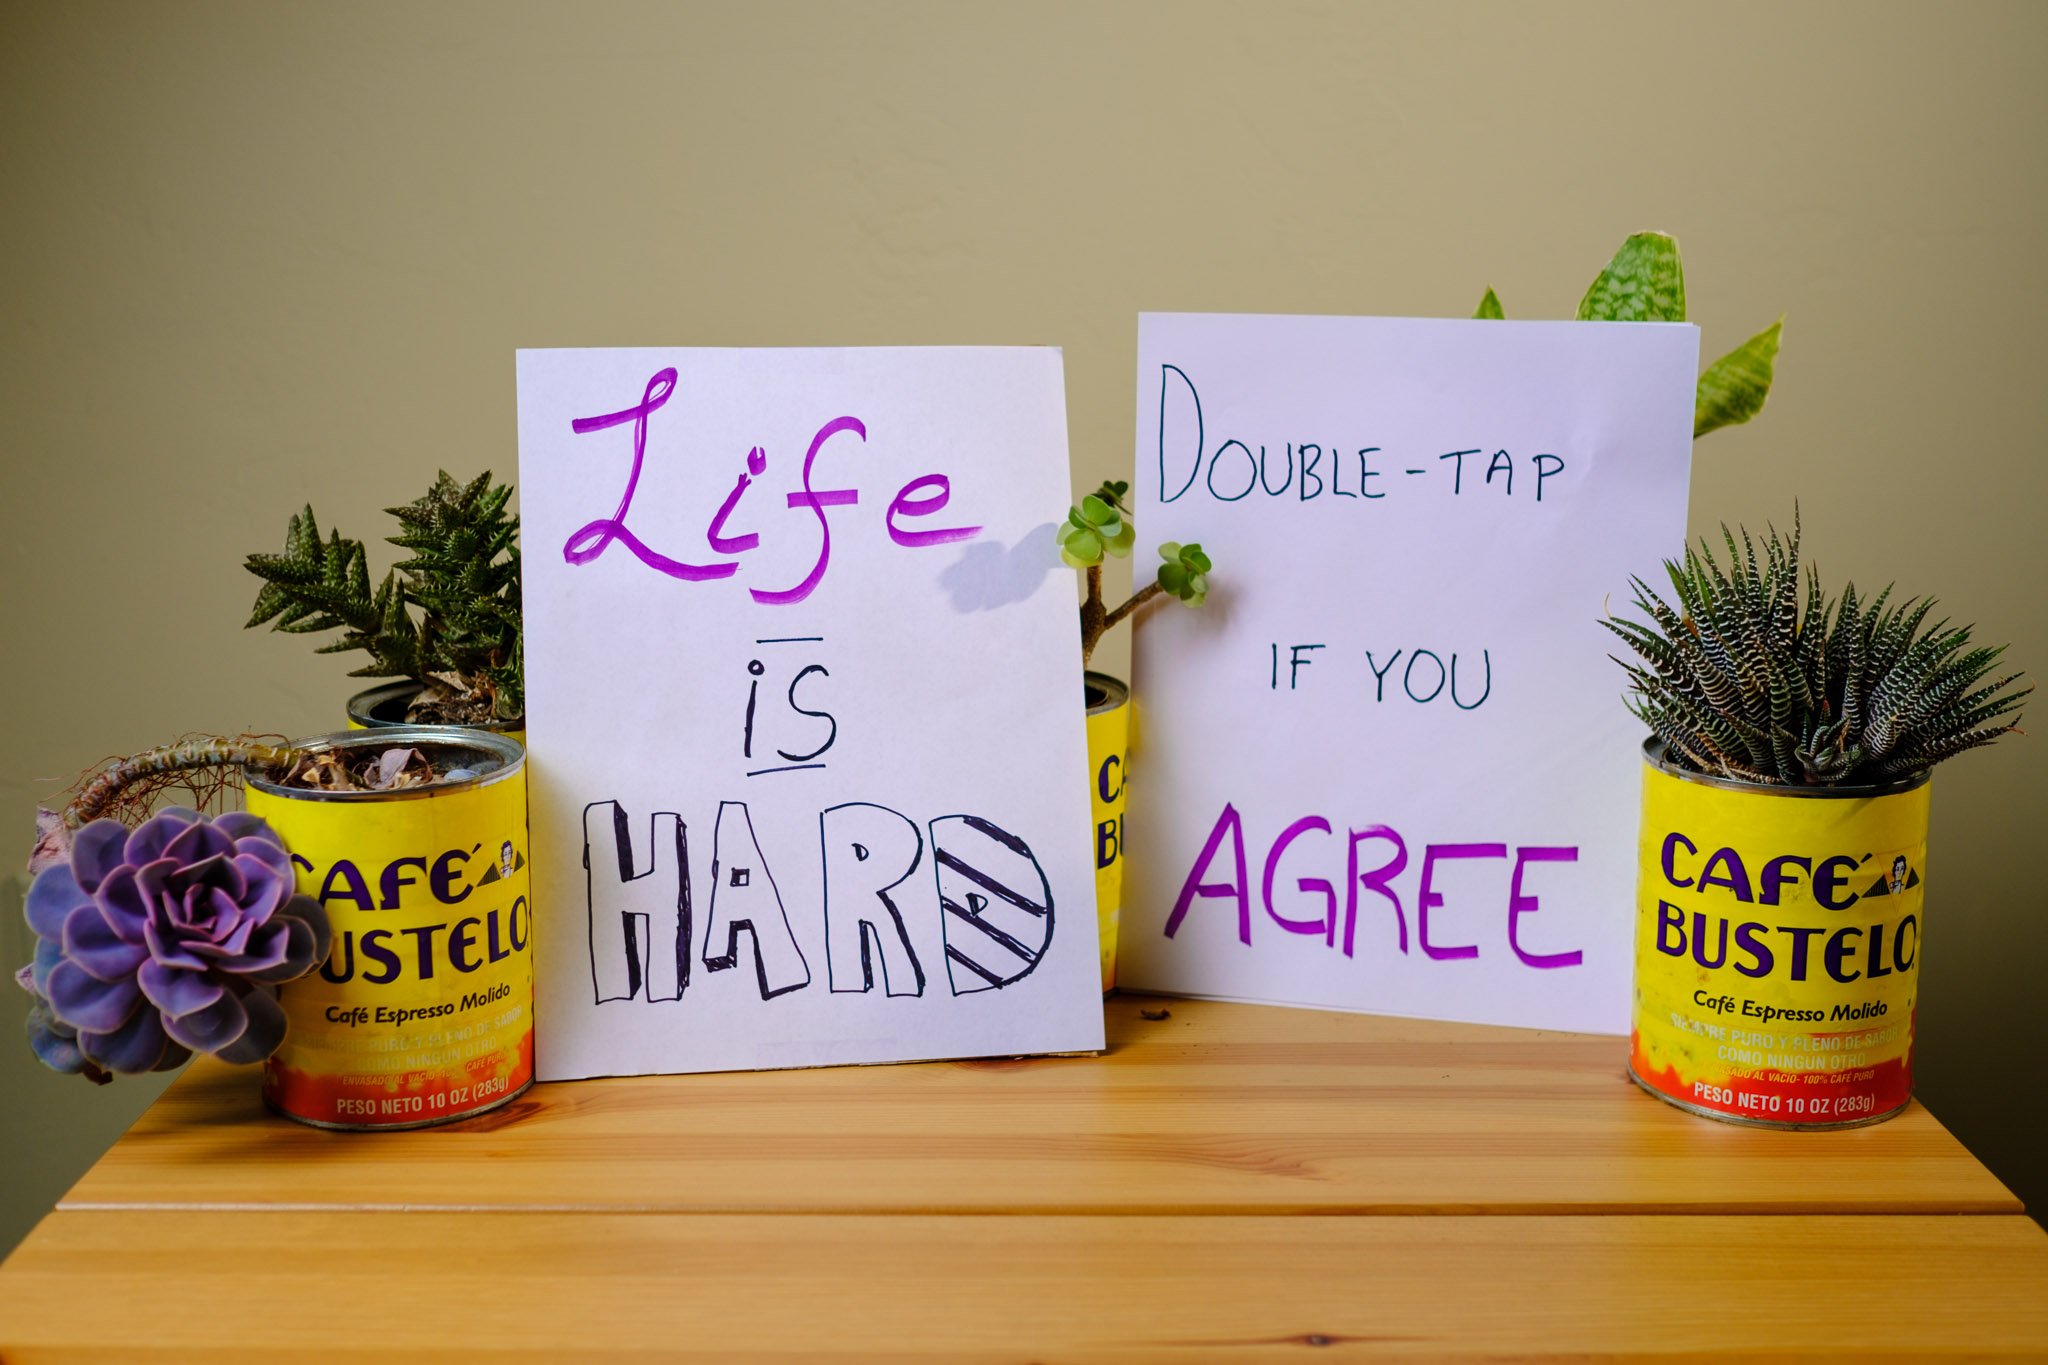 A collection of house plants in coffee cans are holding up two signs that read